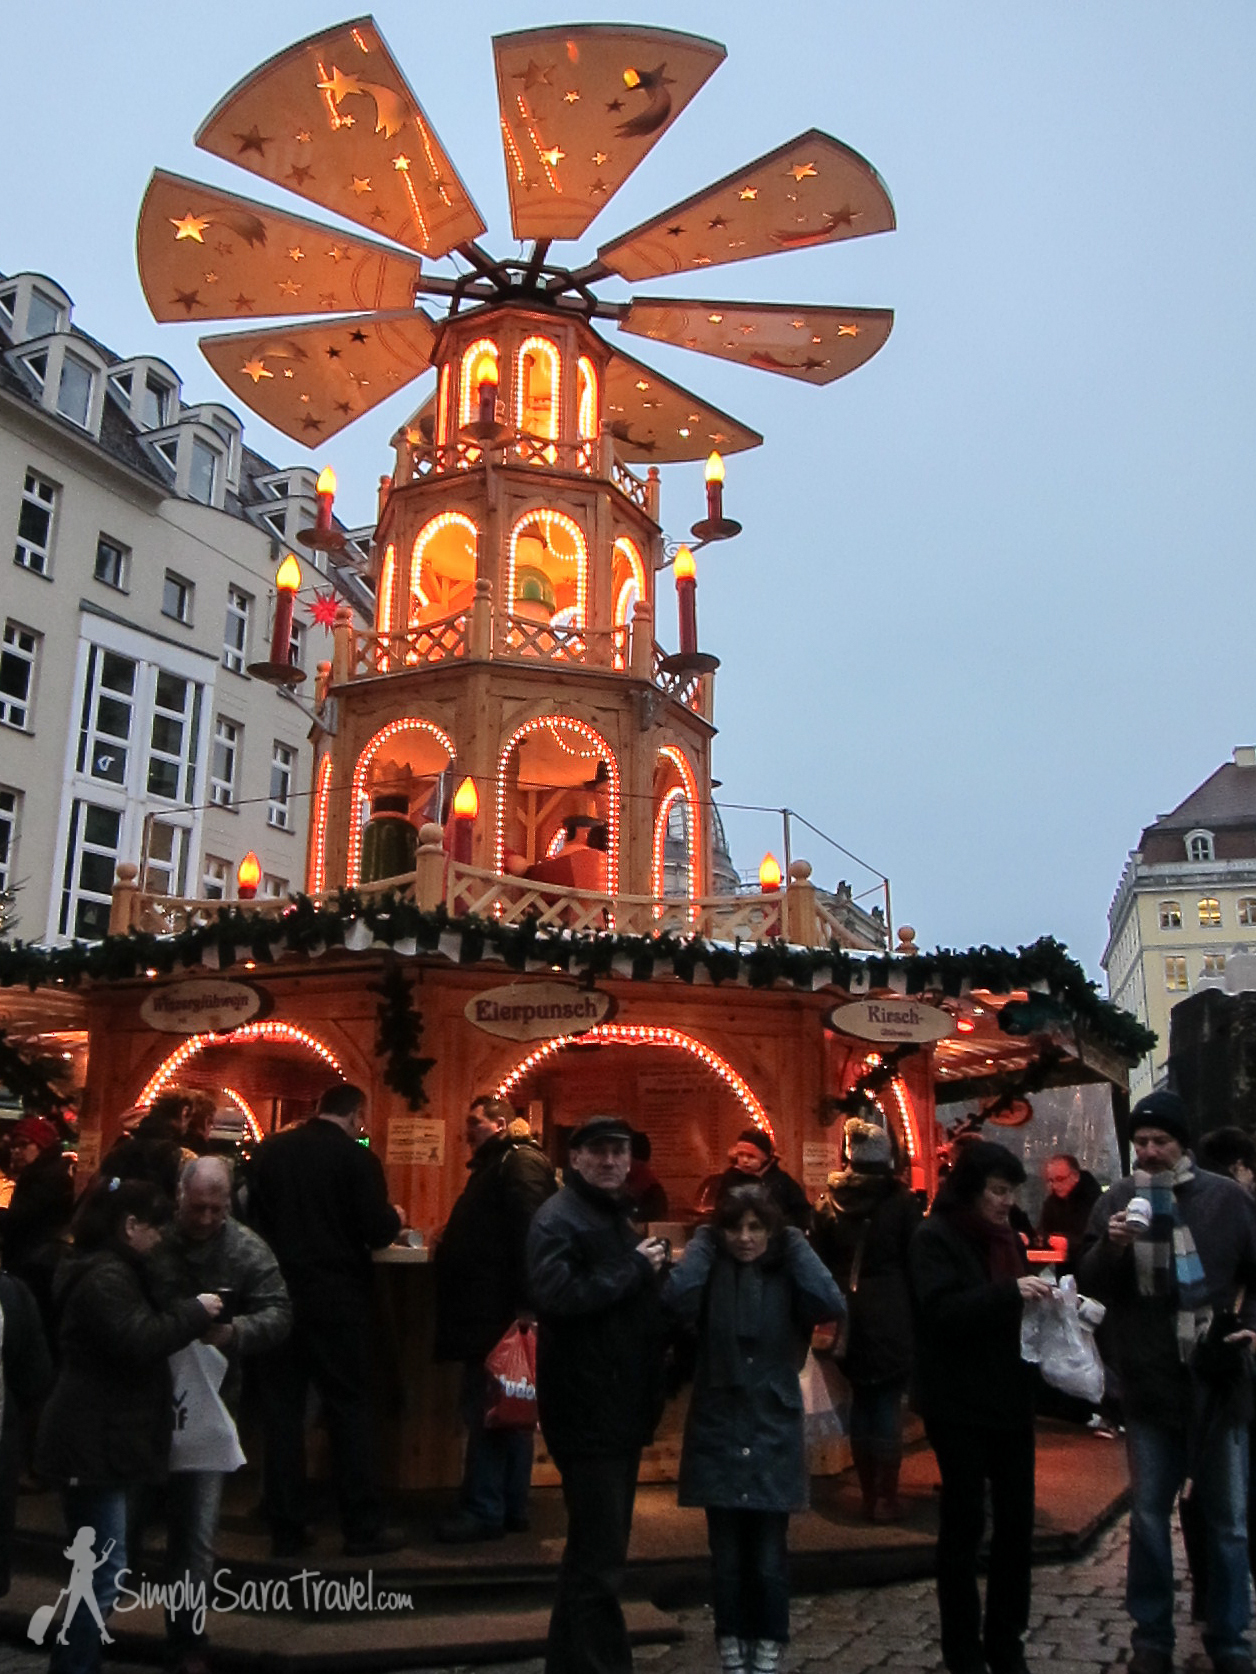 Yea, I had to take a cheap shot with X. But seriously, there are lots of extra people coming to Dresden to visit this very old Christmas market - 2013 marks the  Striezelmarkt's 579th year !The market entices  2.5 million visitors  annually!